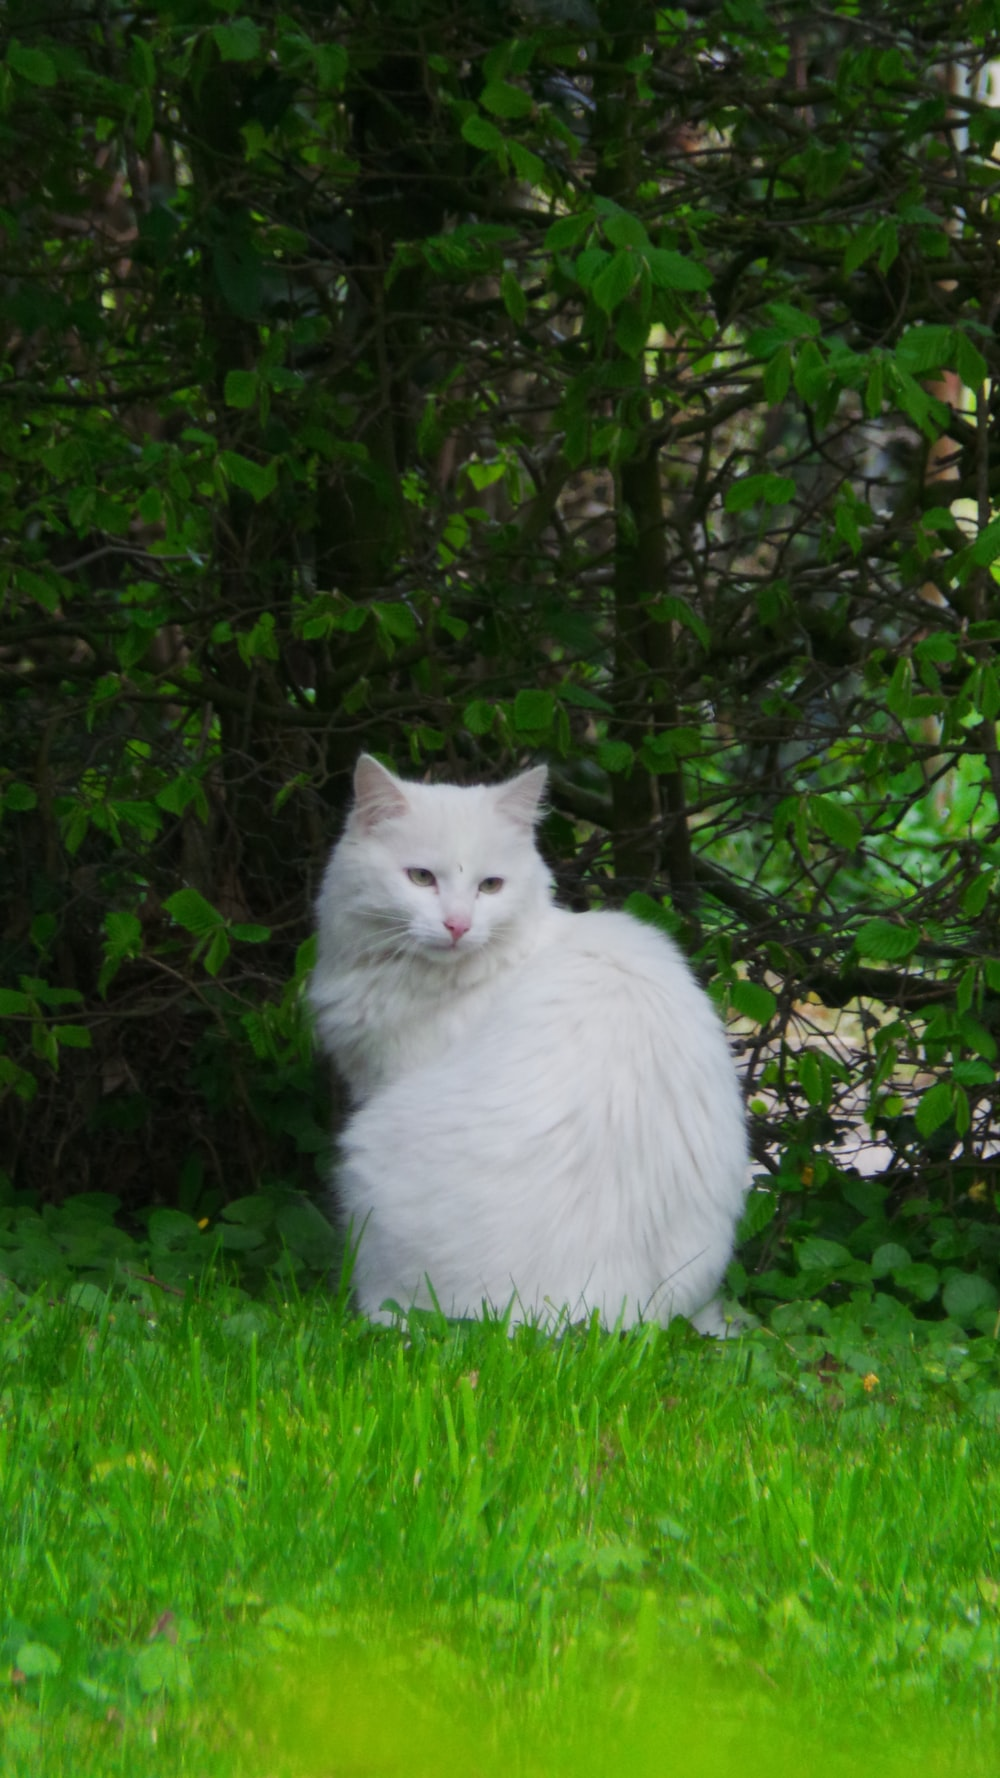 large white cat by grass leafed plant during daytime